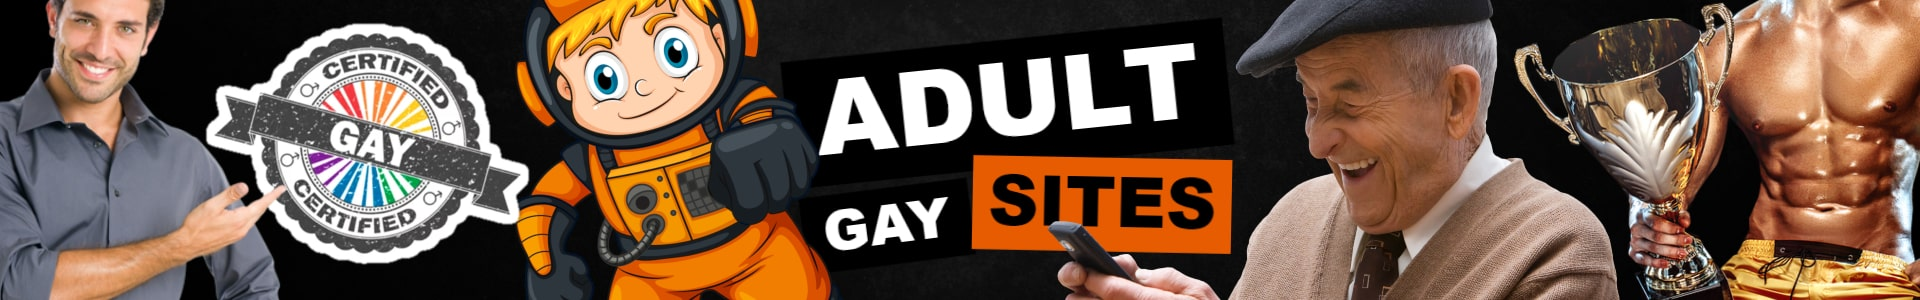 Adult Gay Sites